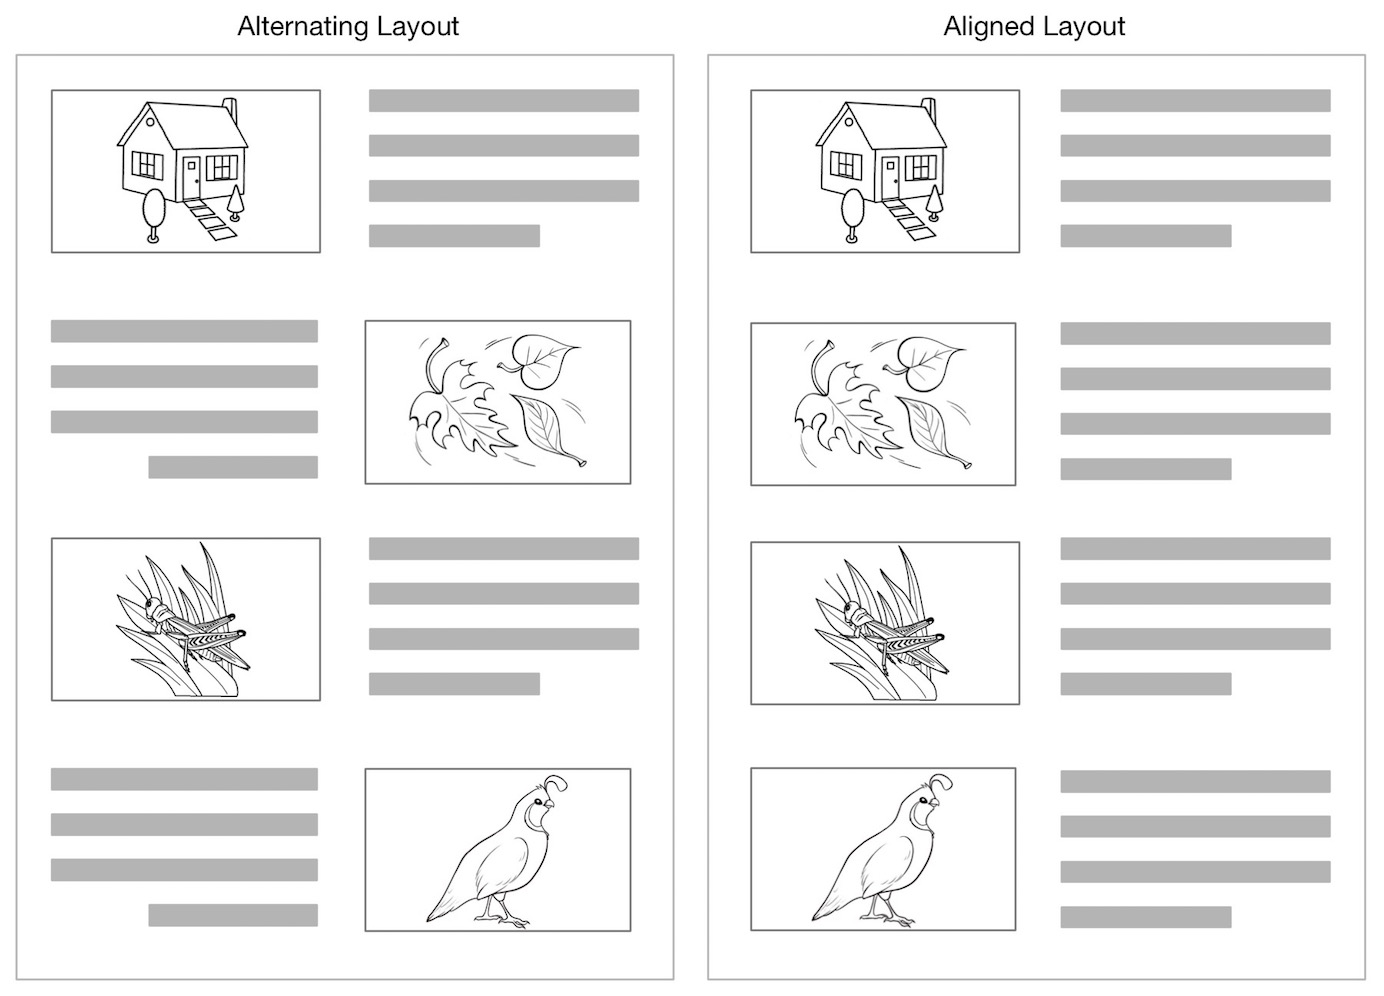 zigzag image text layouts make scanning less efficient